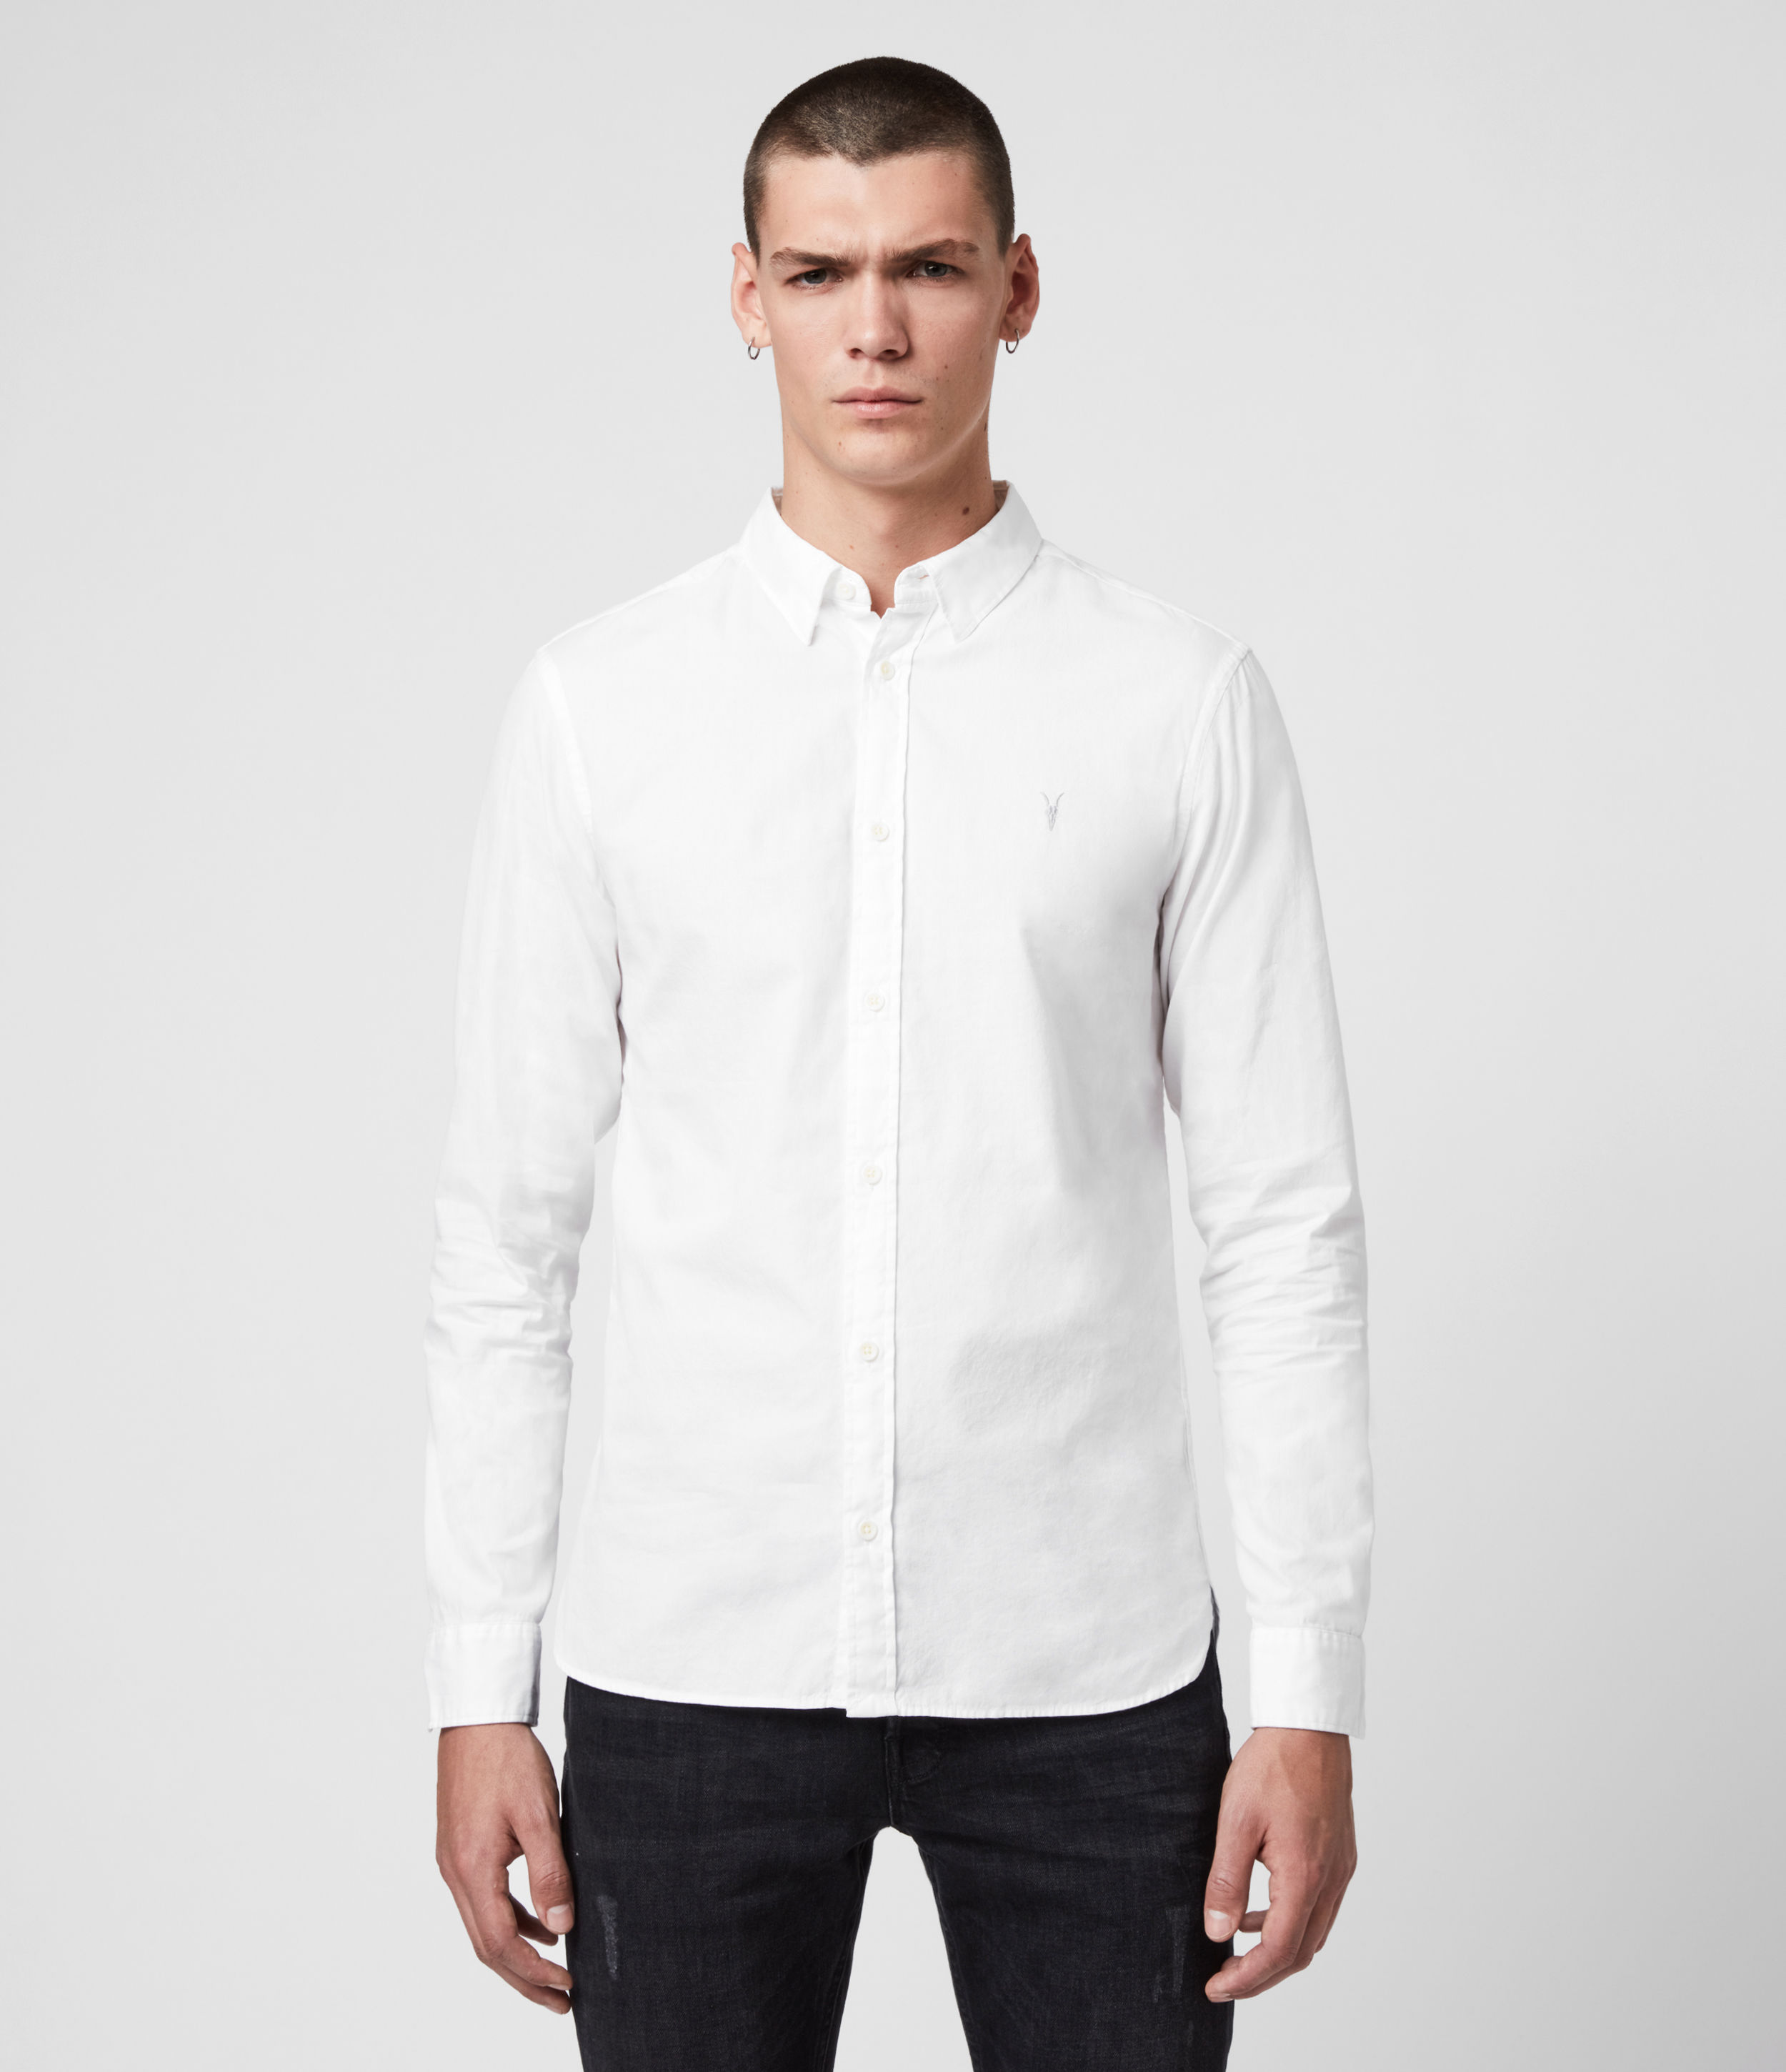 AllSaints Men's Cotton Slim Fit Redondo Long Sleeve Shirt, White, Size: XS